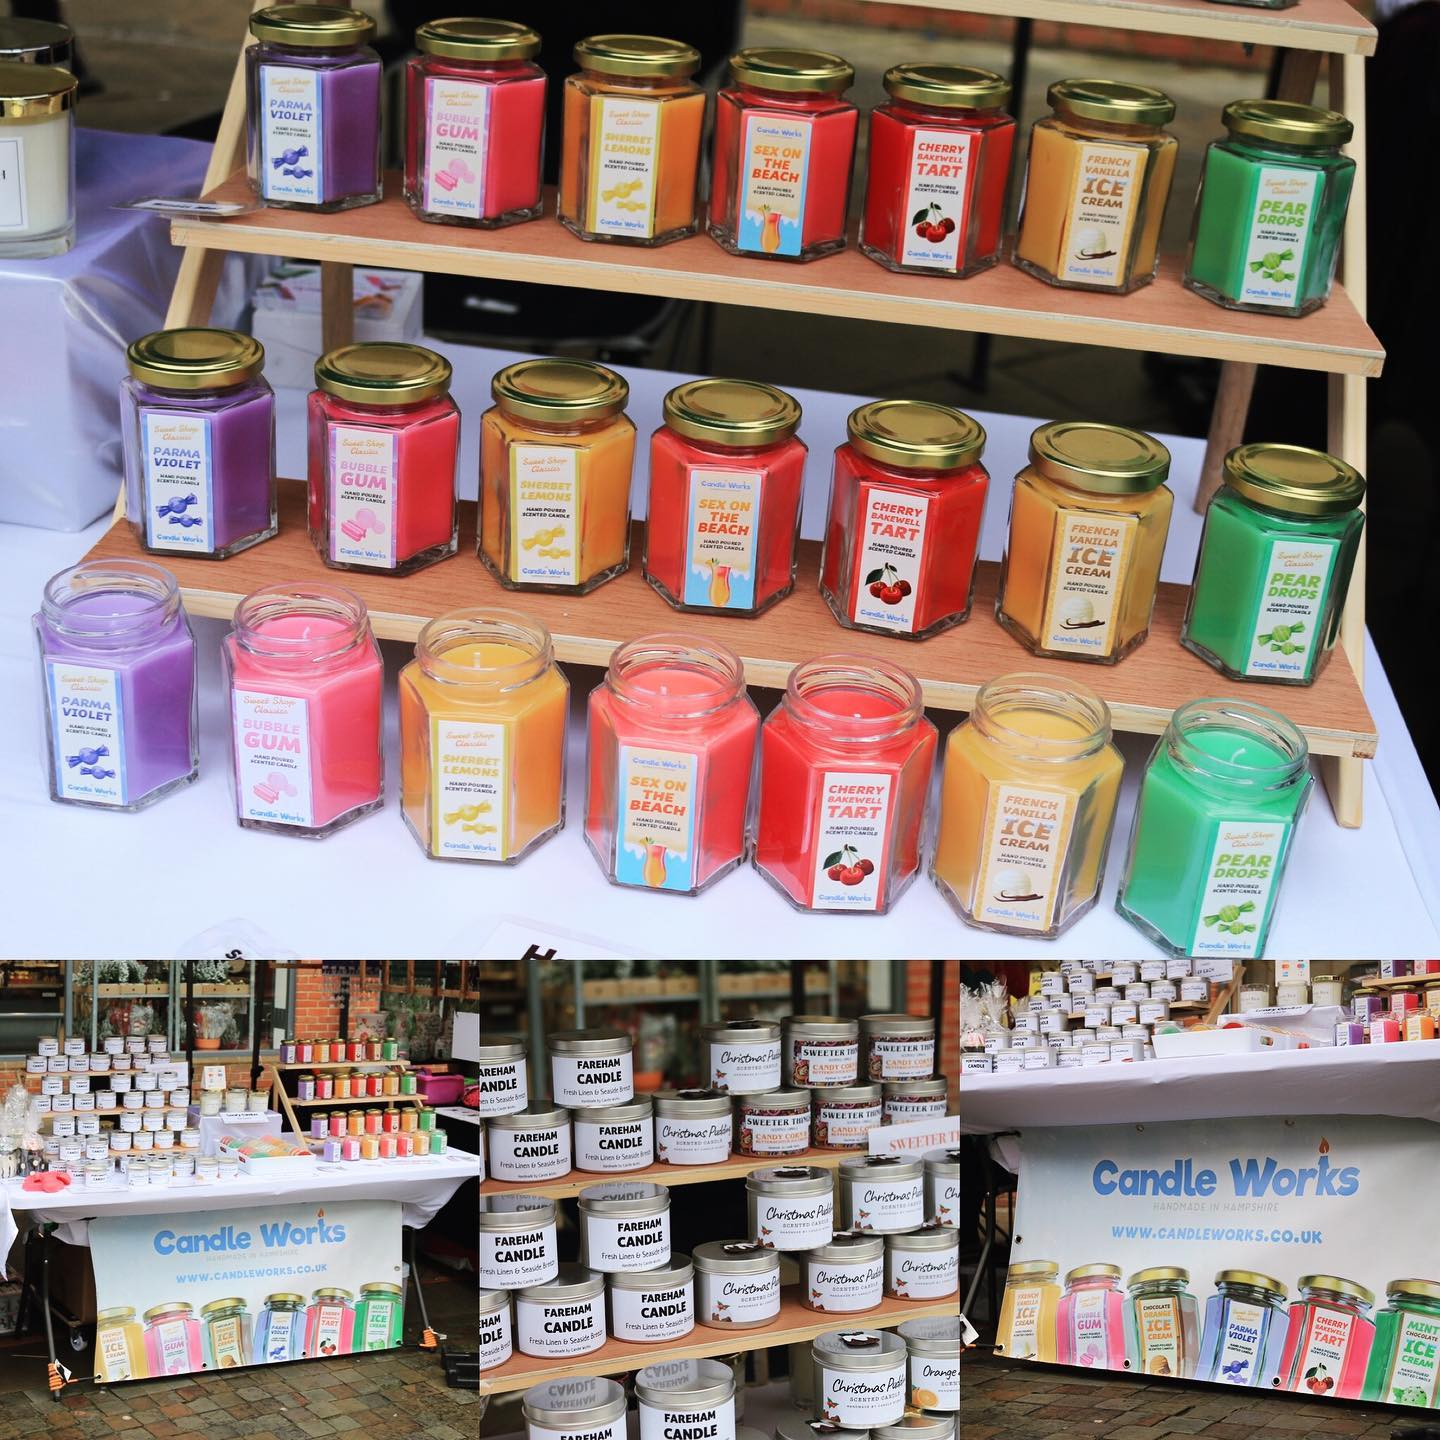 Candle Works Market